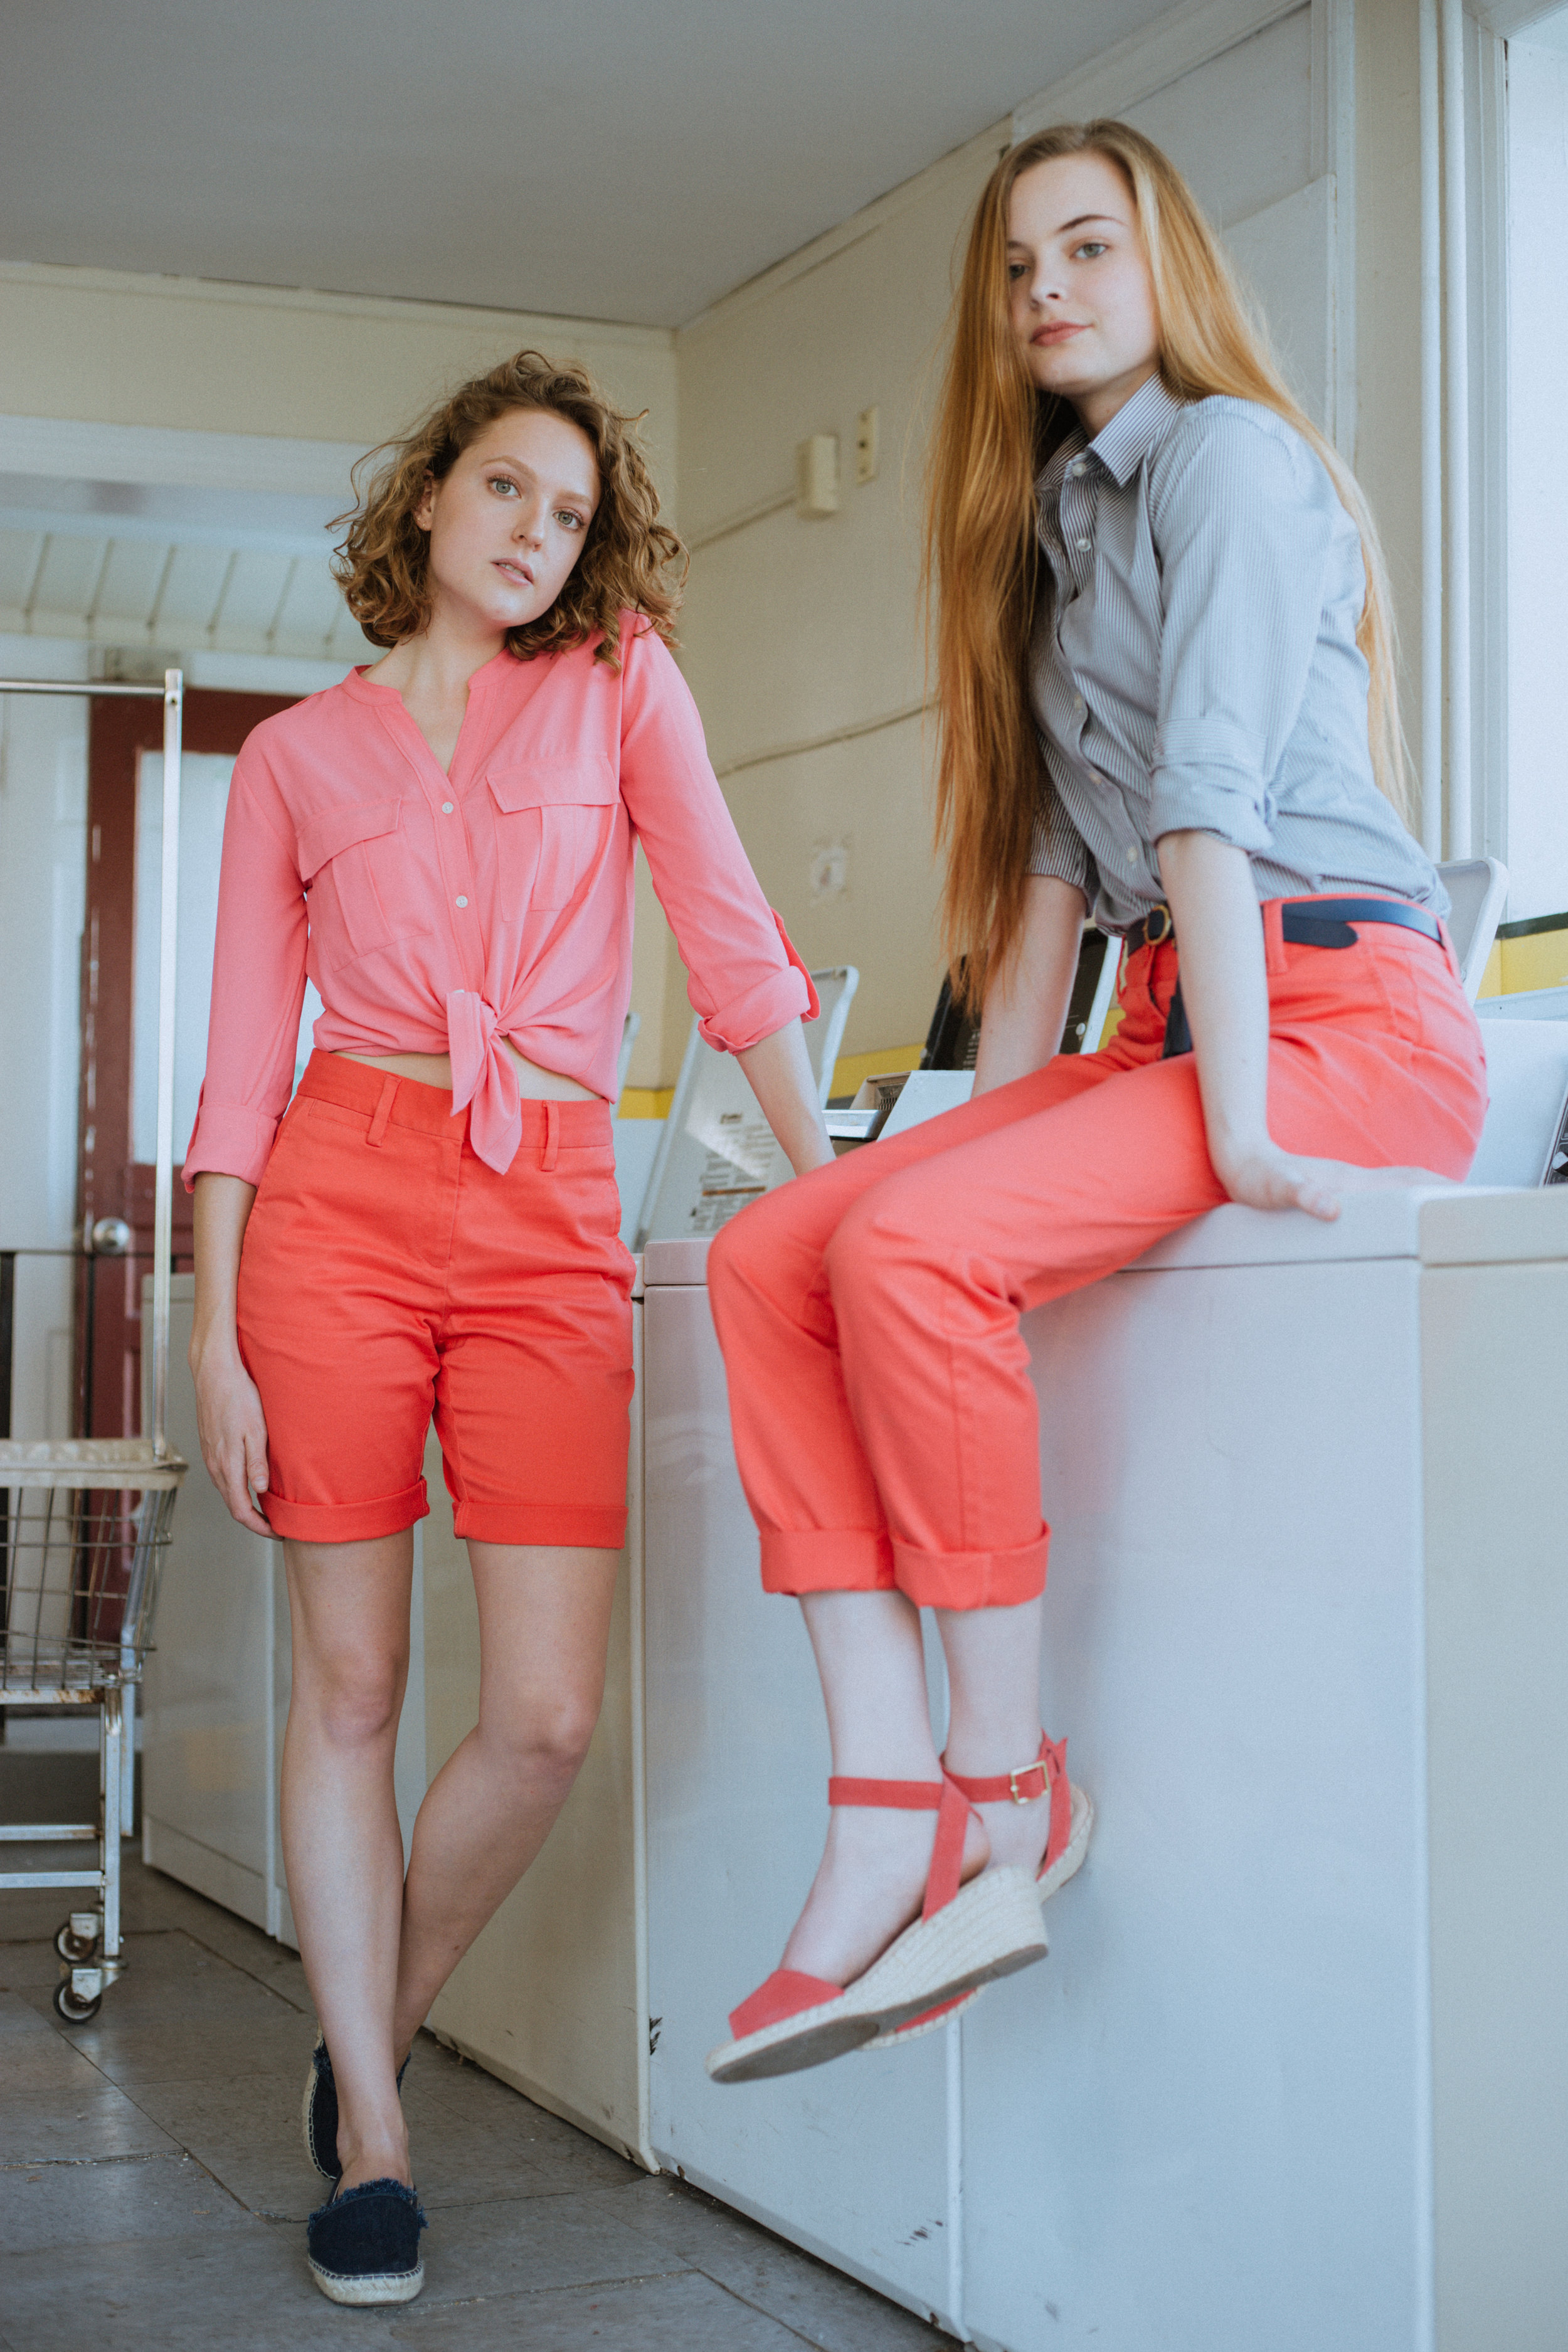 LANDS' END - photography, styling, creative direction